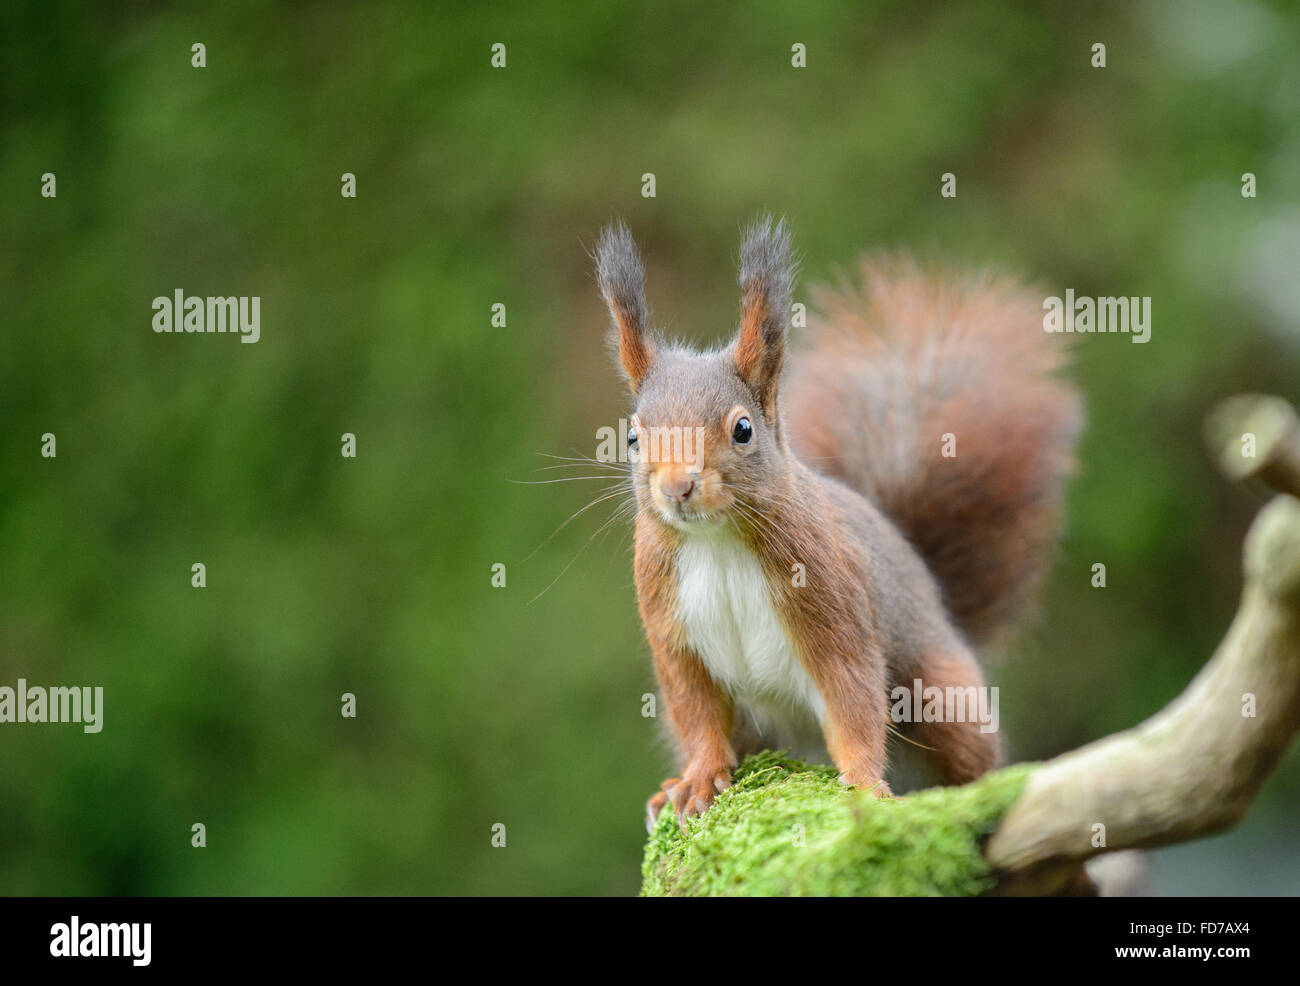 Red squirrel with large ear tufts - Stock Image